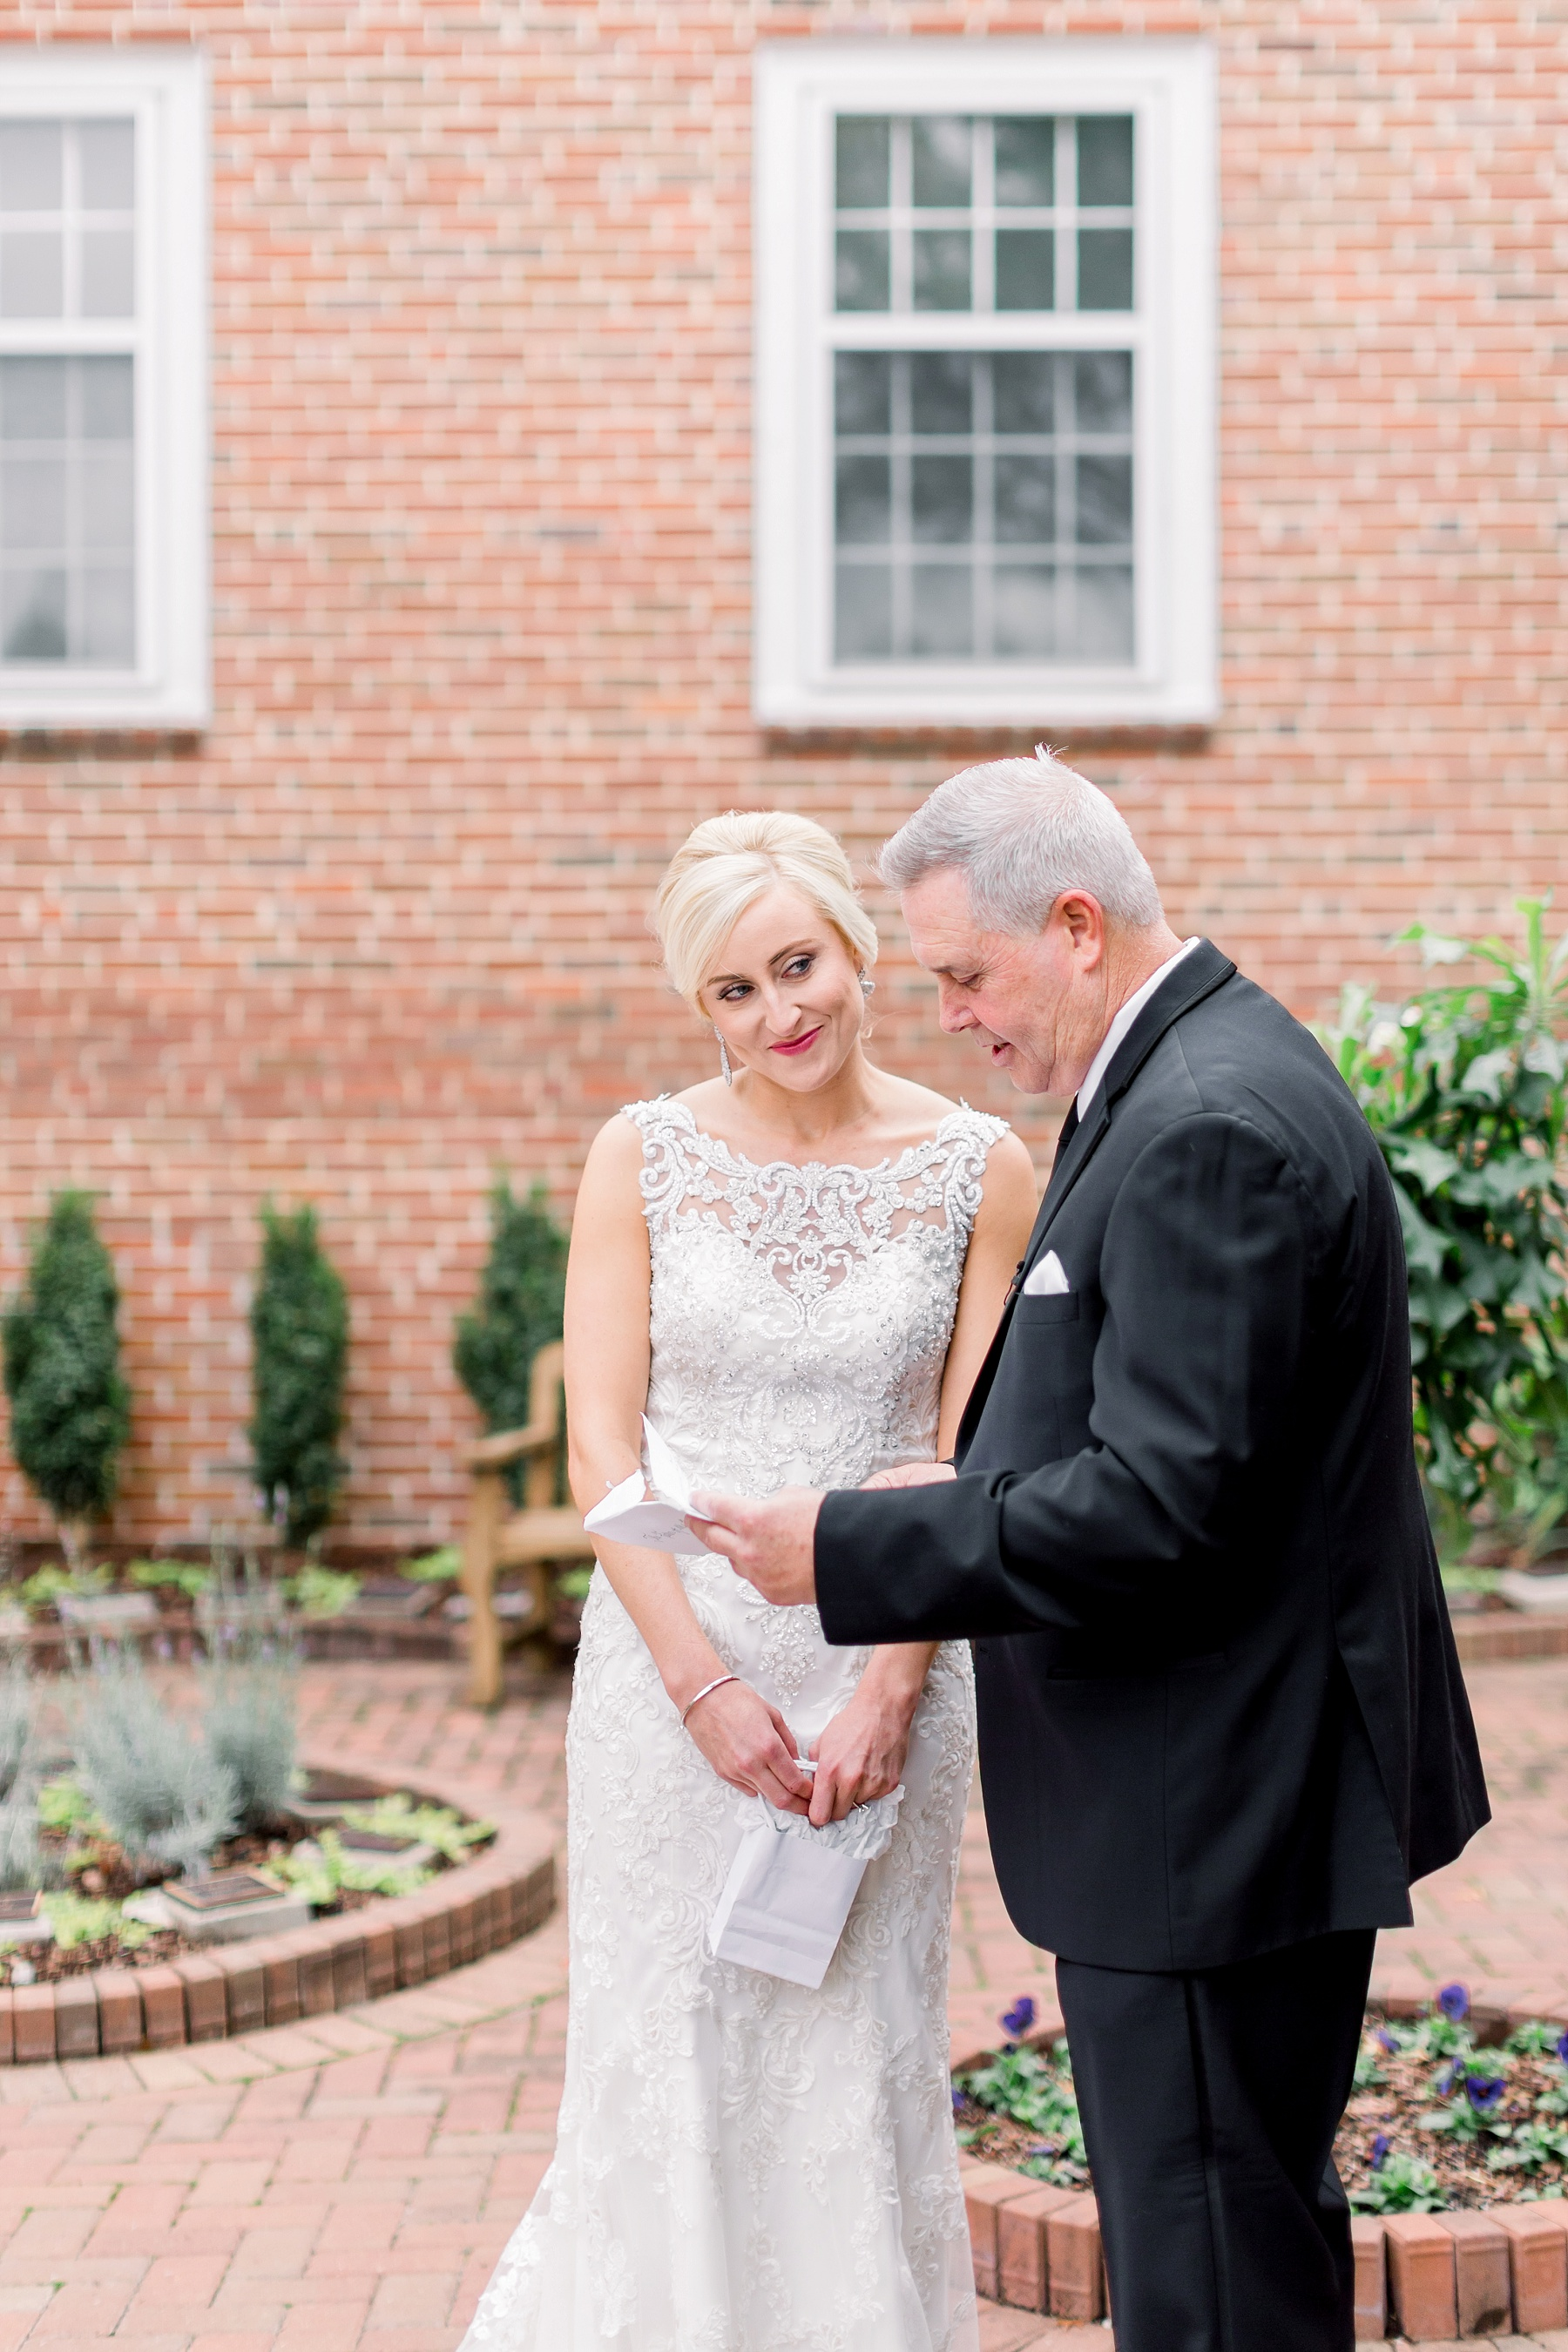 adventurous-authentic-wedding-engagement-photography-kansas-city-elizabeth-ladean-photo_5462.jpg